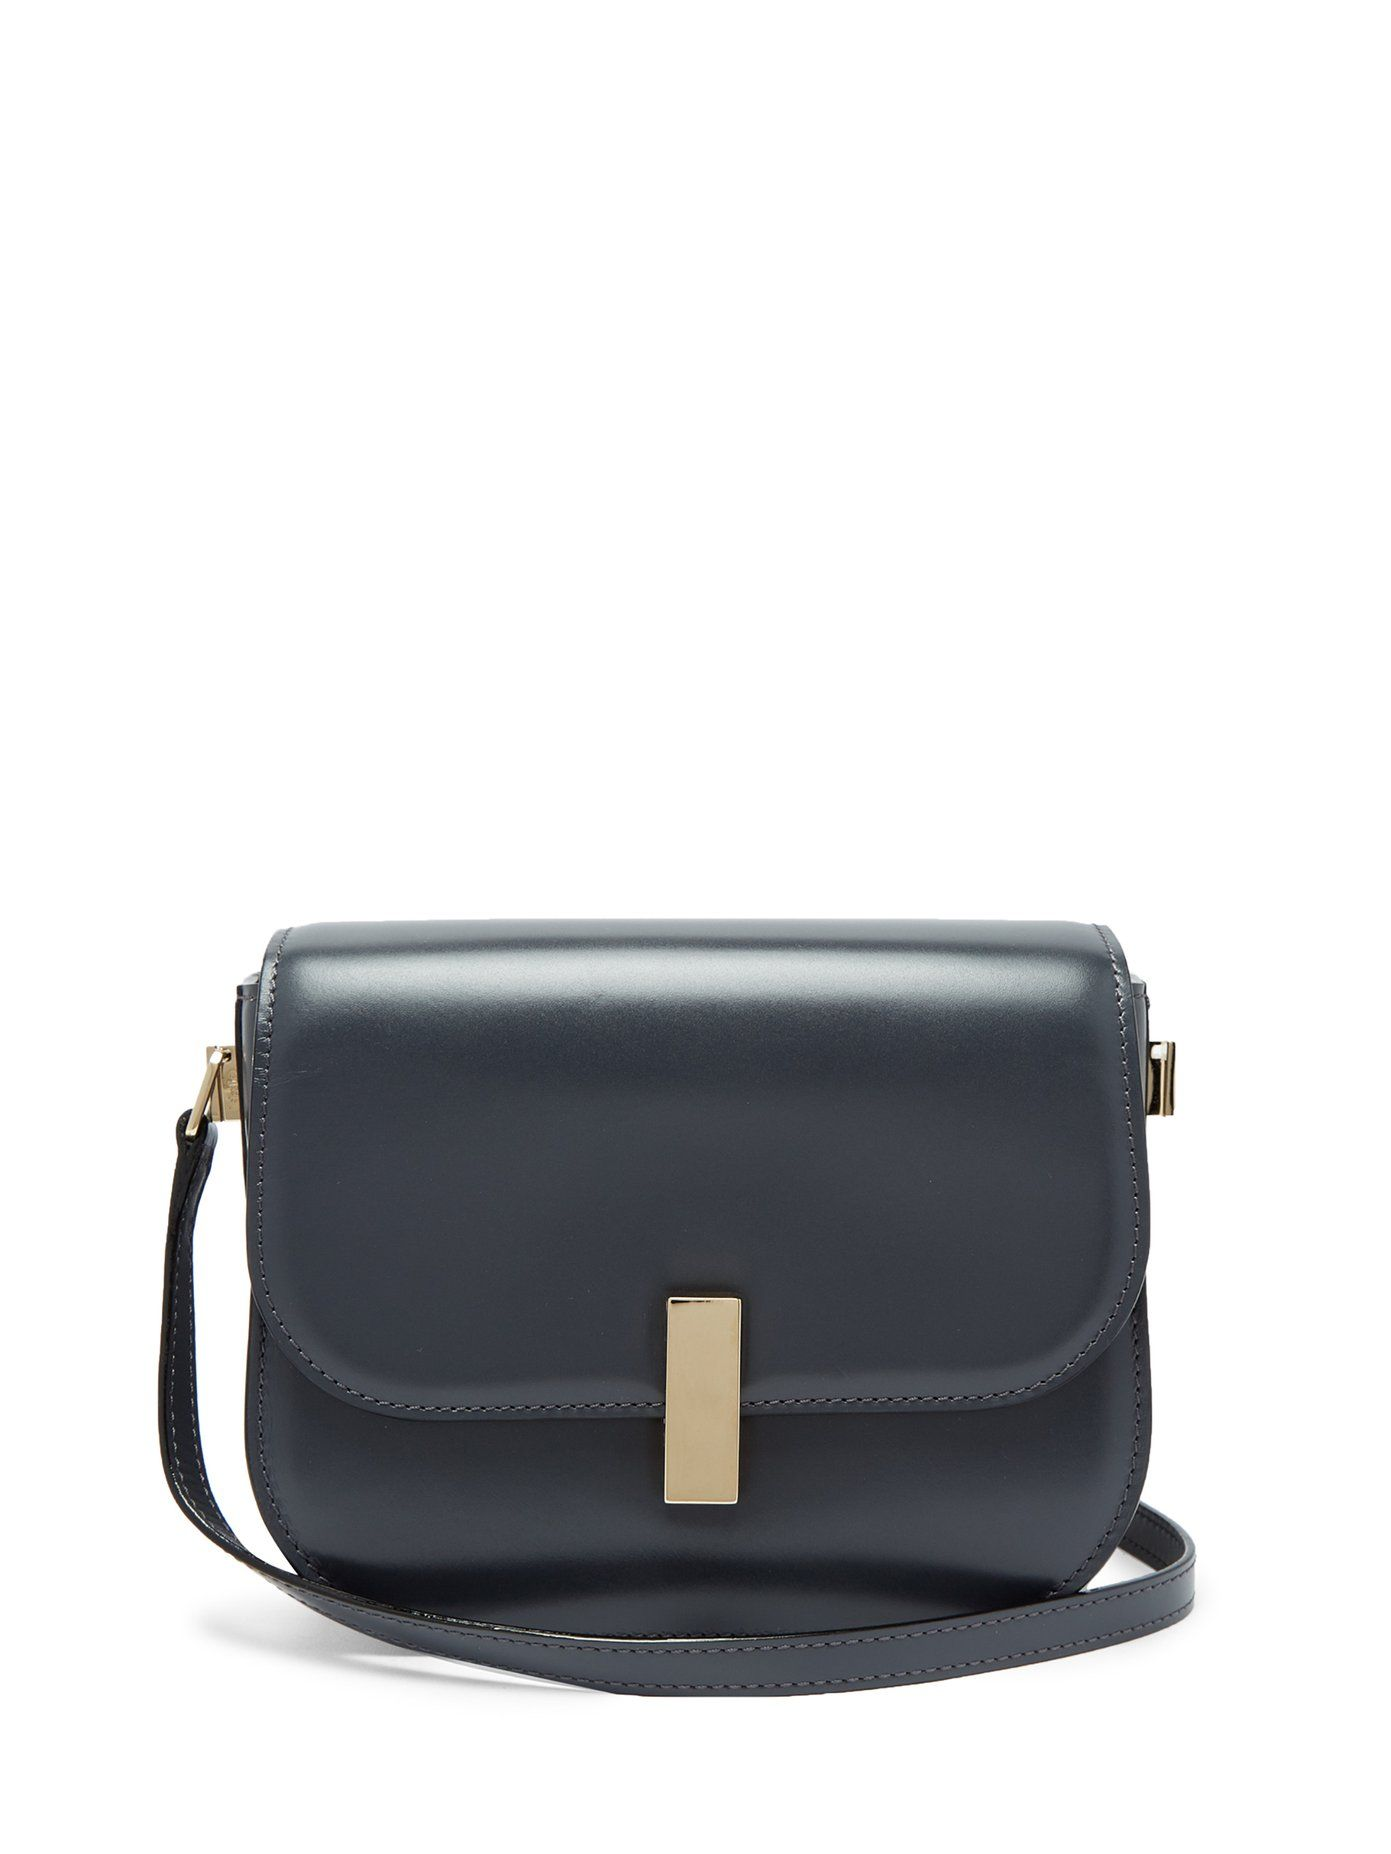 b67644f7d97a4 Iside cross-body leather bag